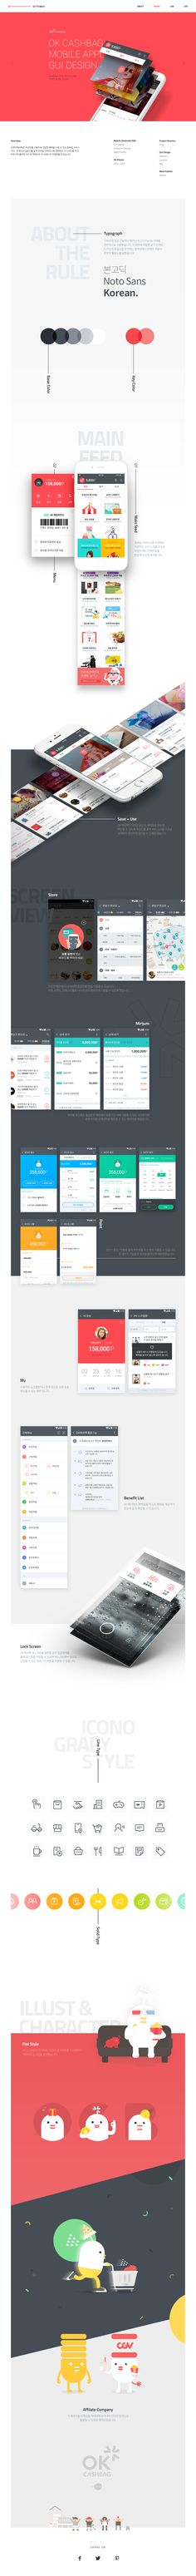 다음 @Behance 프로젝트 확인: \u201cSKP OK Cashbag Mobile APP Design.\u201d https://www.behance.net/gallery/49773495/SKP-OK-Cashbag-Mobile-APP-Design